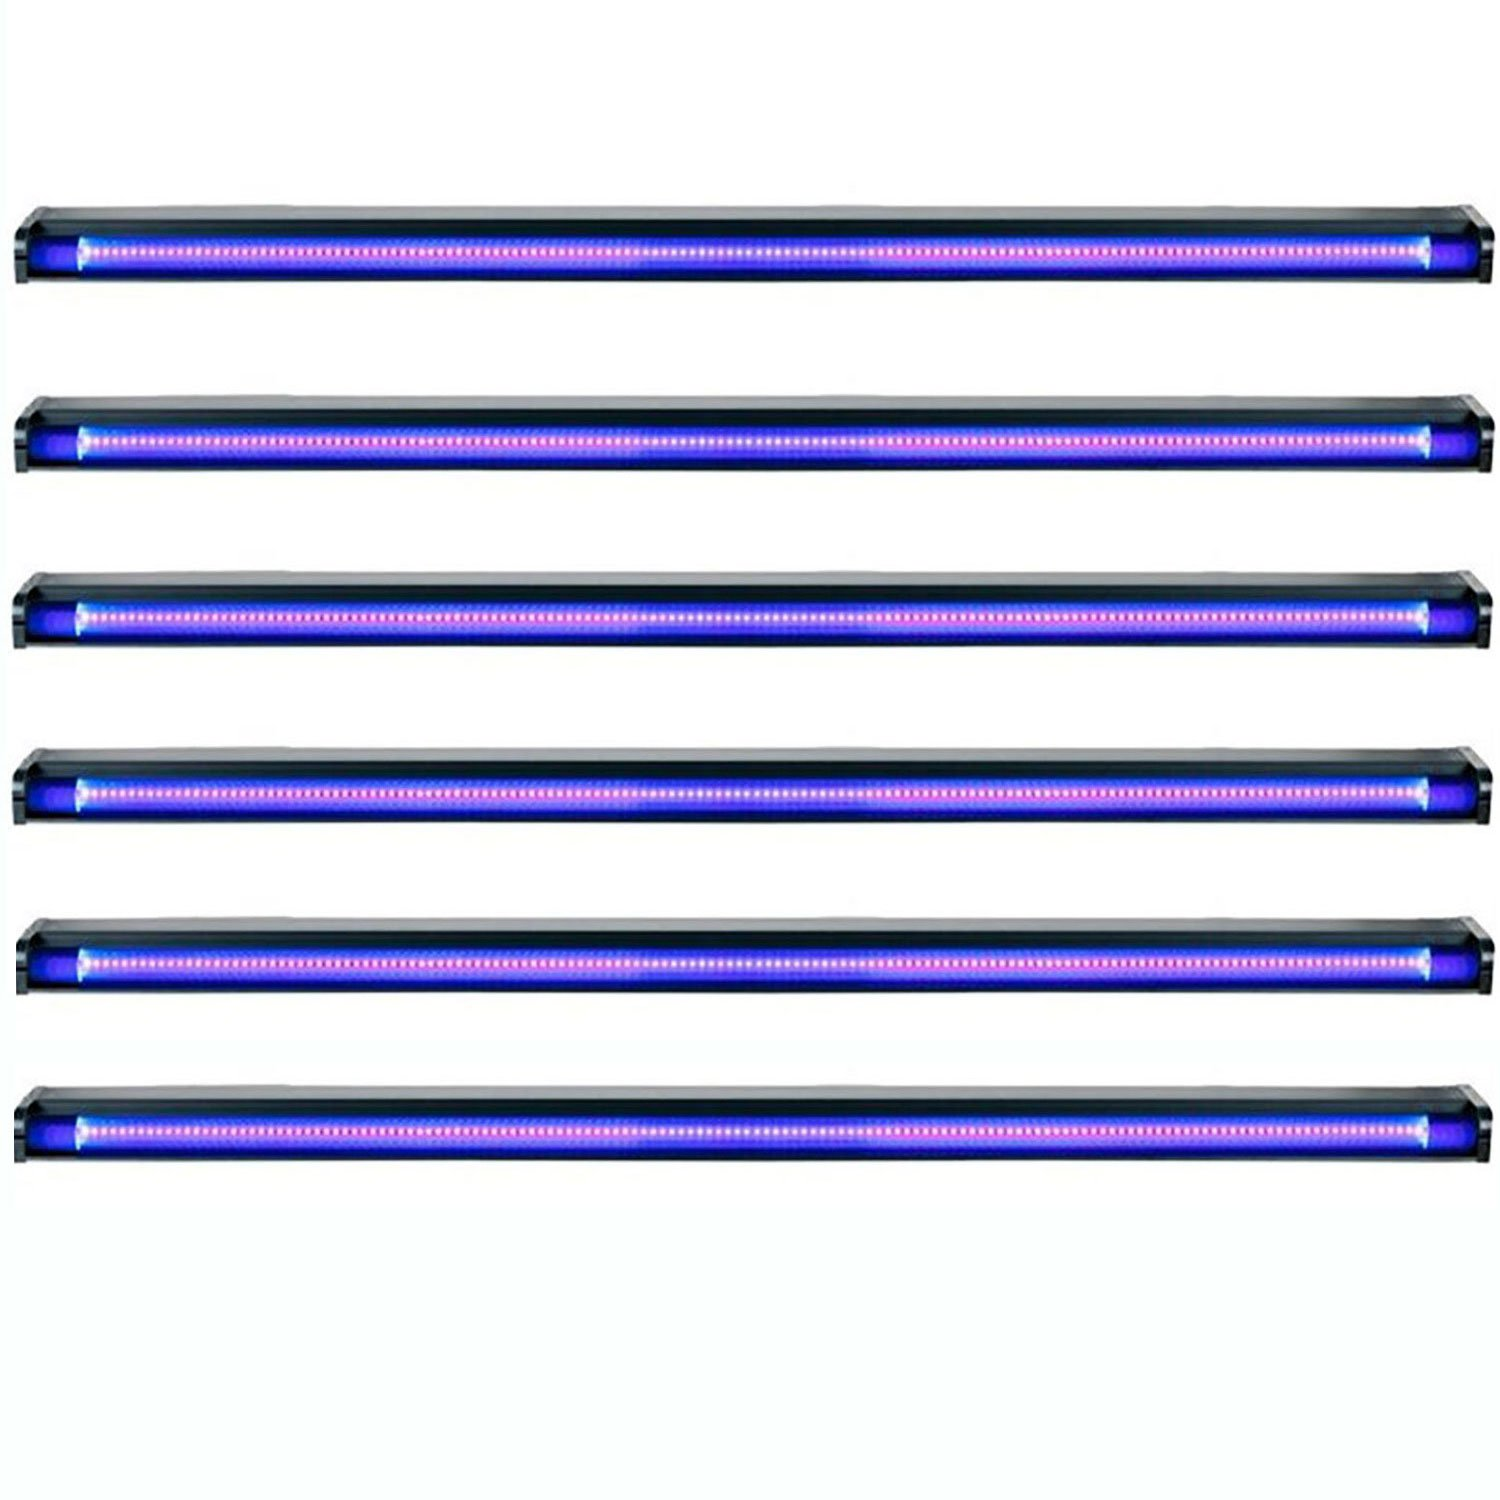 American DJ Startec 48'' 20W Stage Party UV LED Black Light Strip Bar (6 Pack)